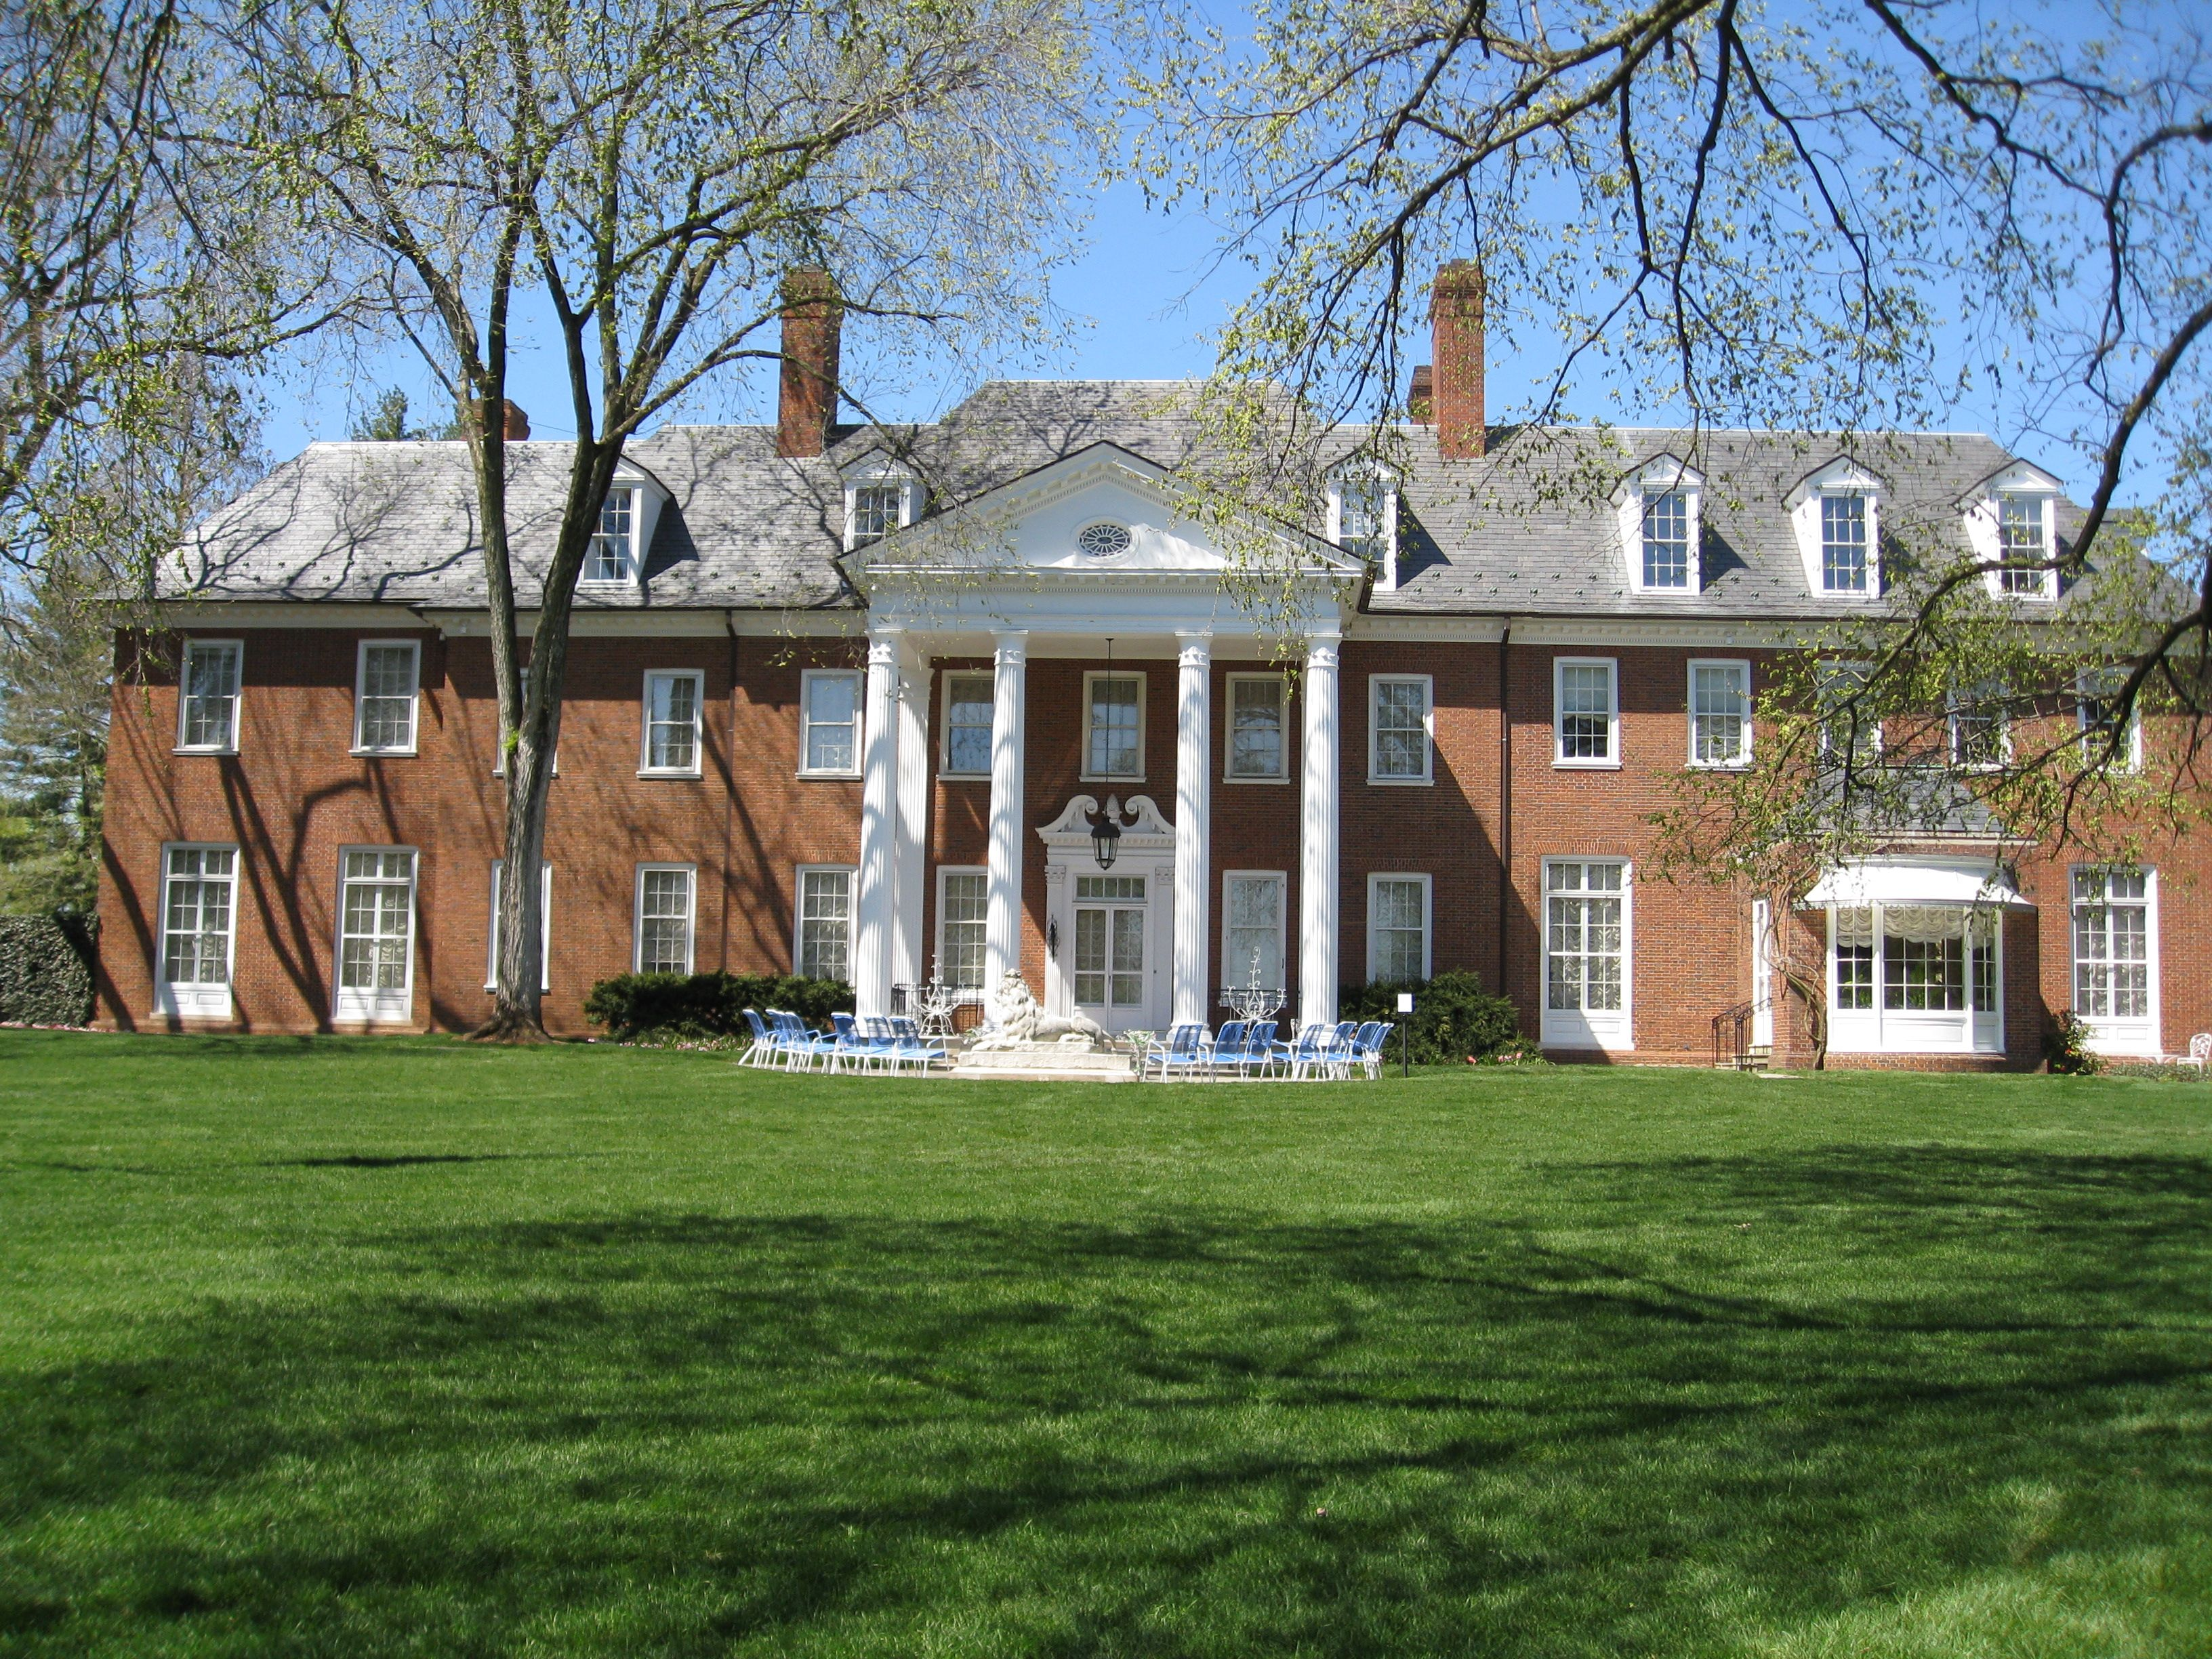 Hillwood Estate Washington Dc The Estate Is The Former Home And Garden Of Marjorie